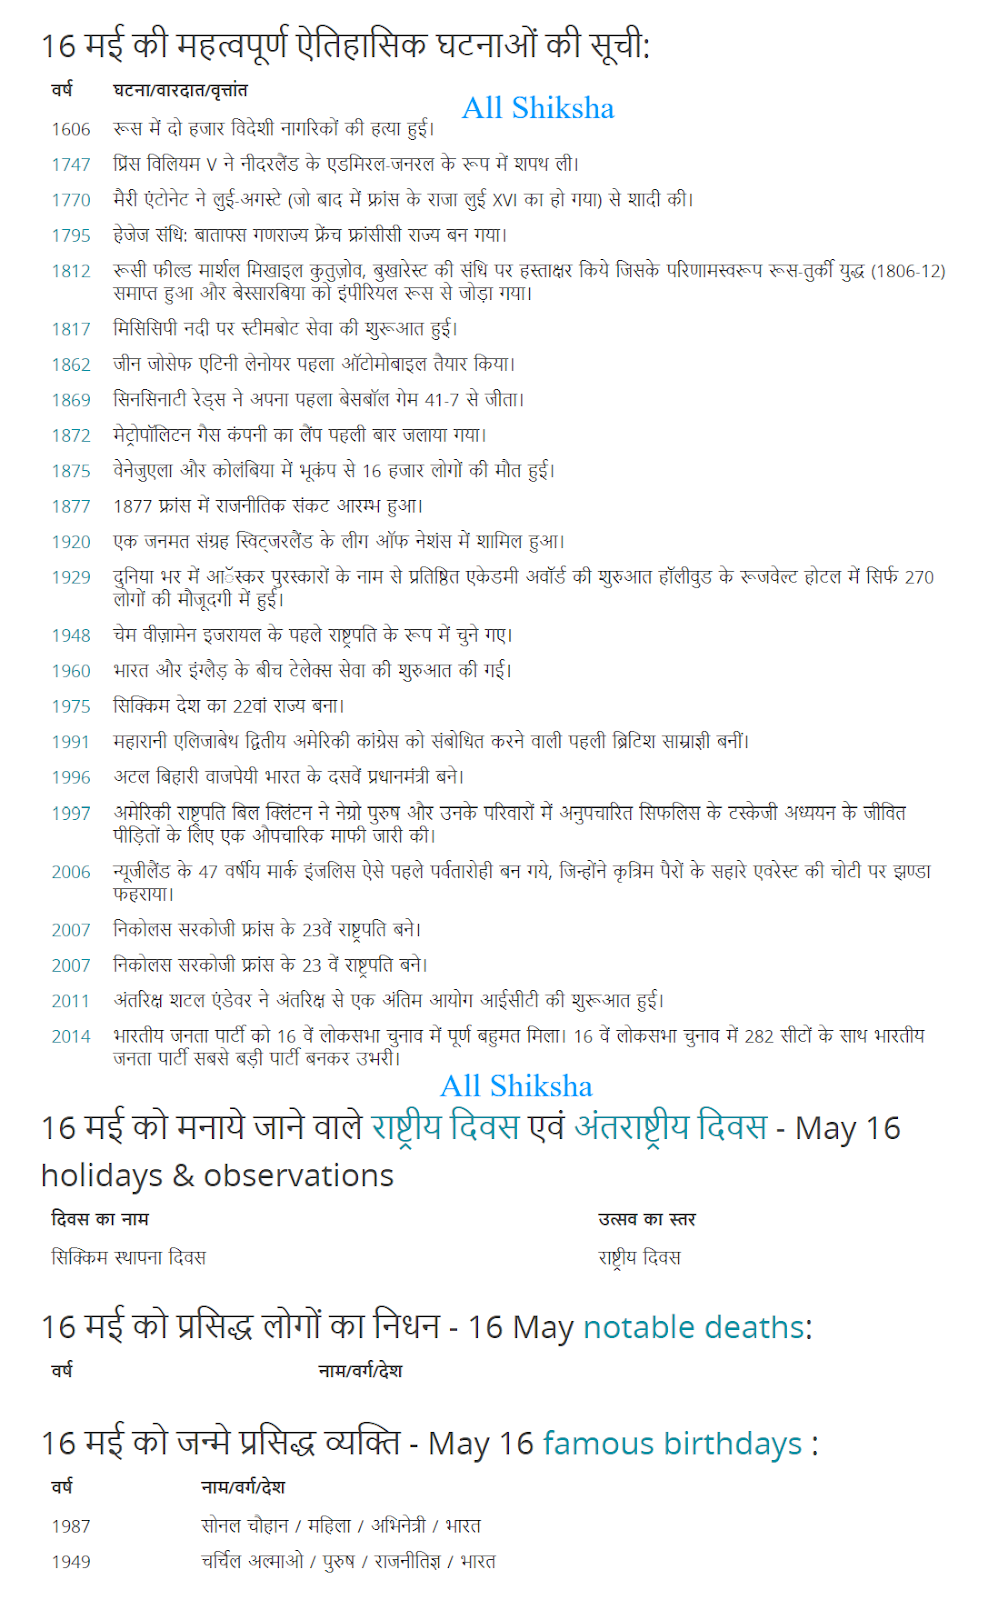 16 May In History To 1606